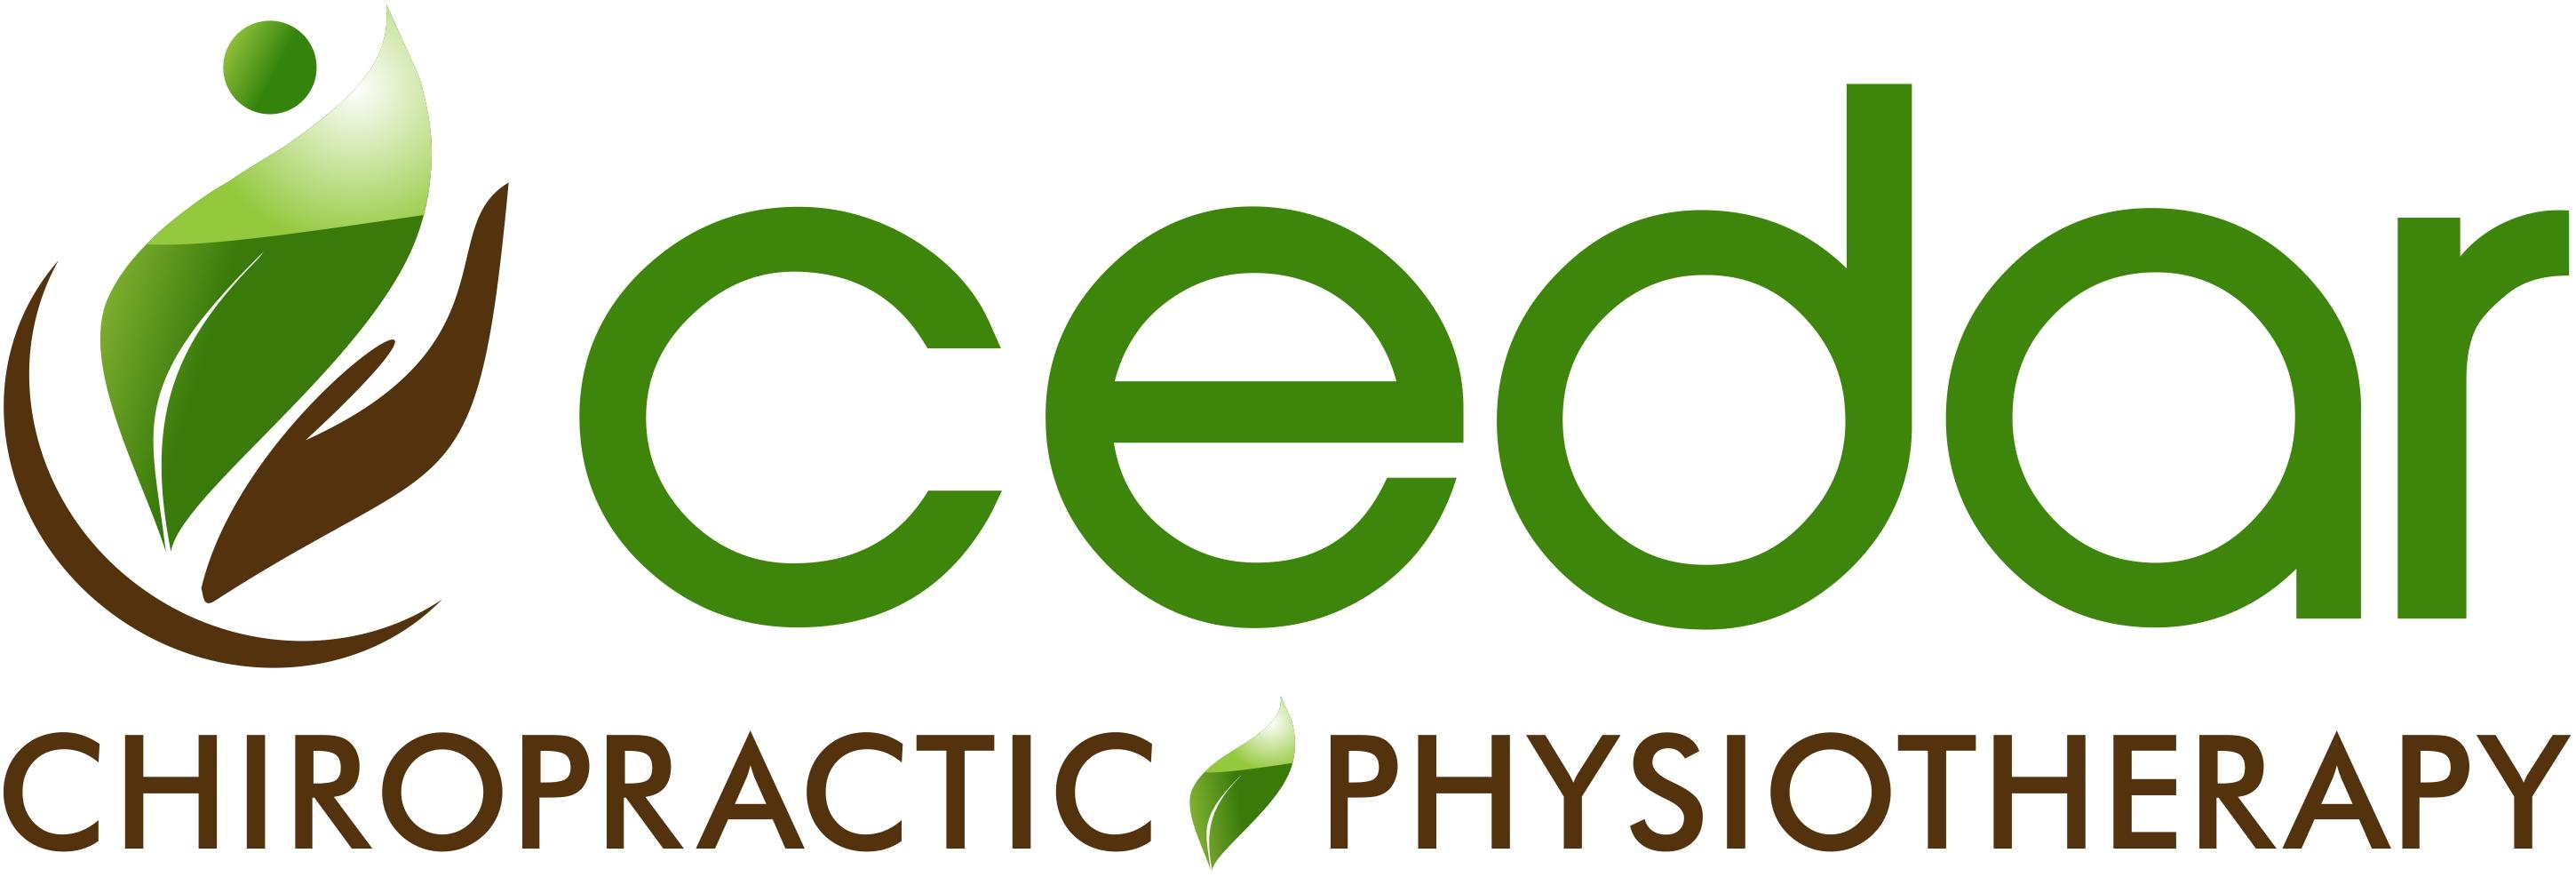 Cedar Chiropractic & Physiotherapy